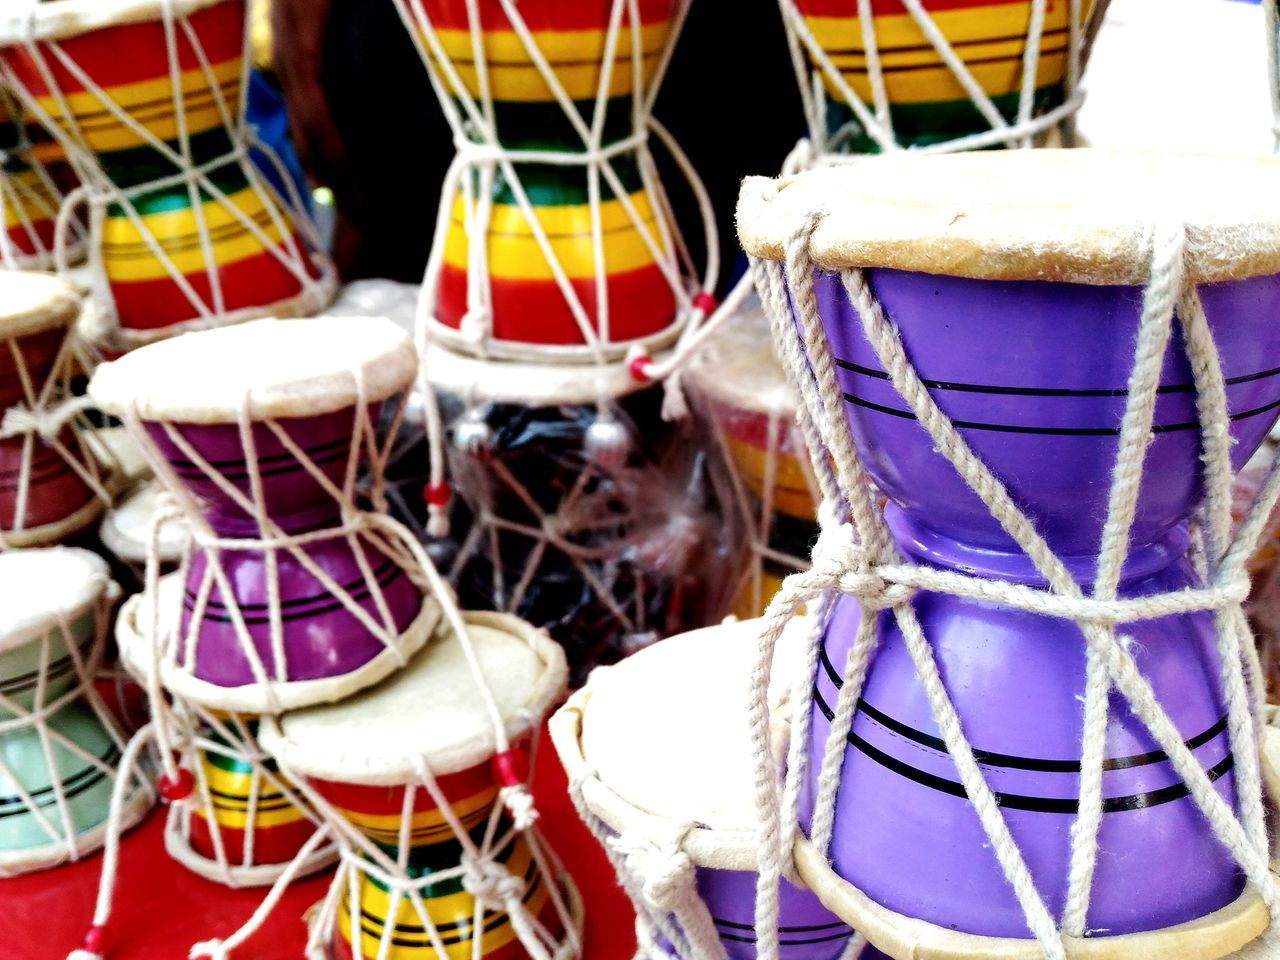 Close-Up Of Drums For Sale